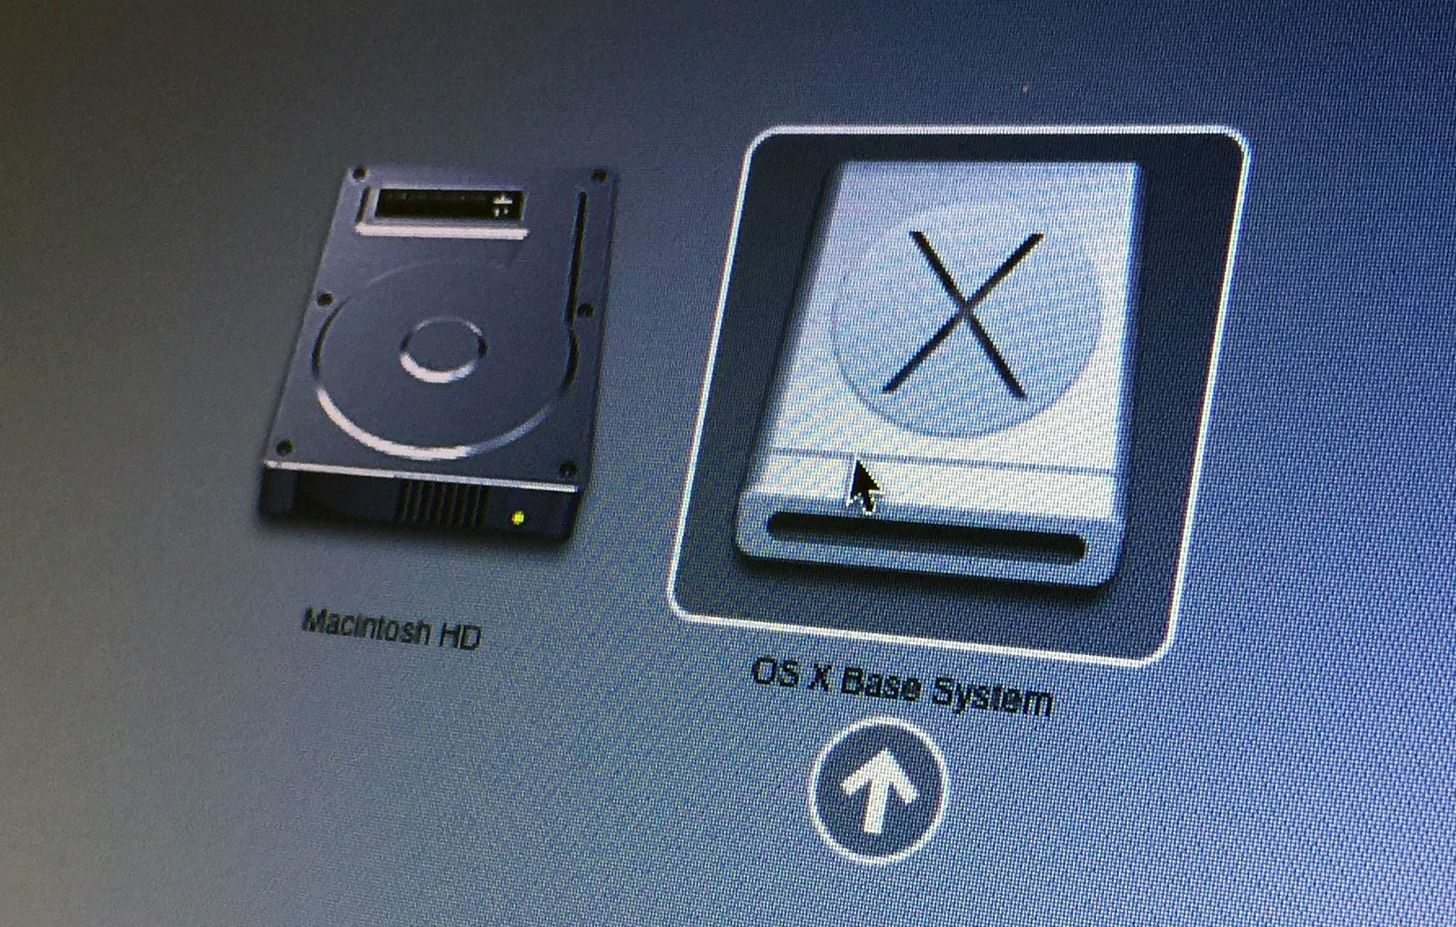 How to Create a Bootable Install USB Drive of Mac OS X 10 11 El